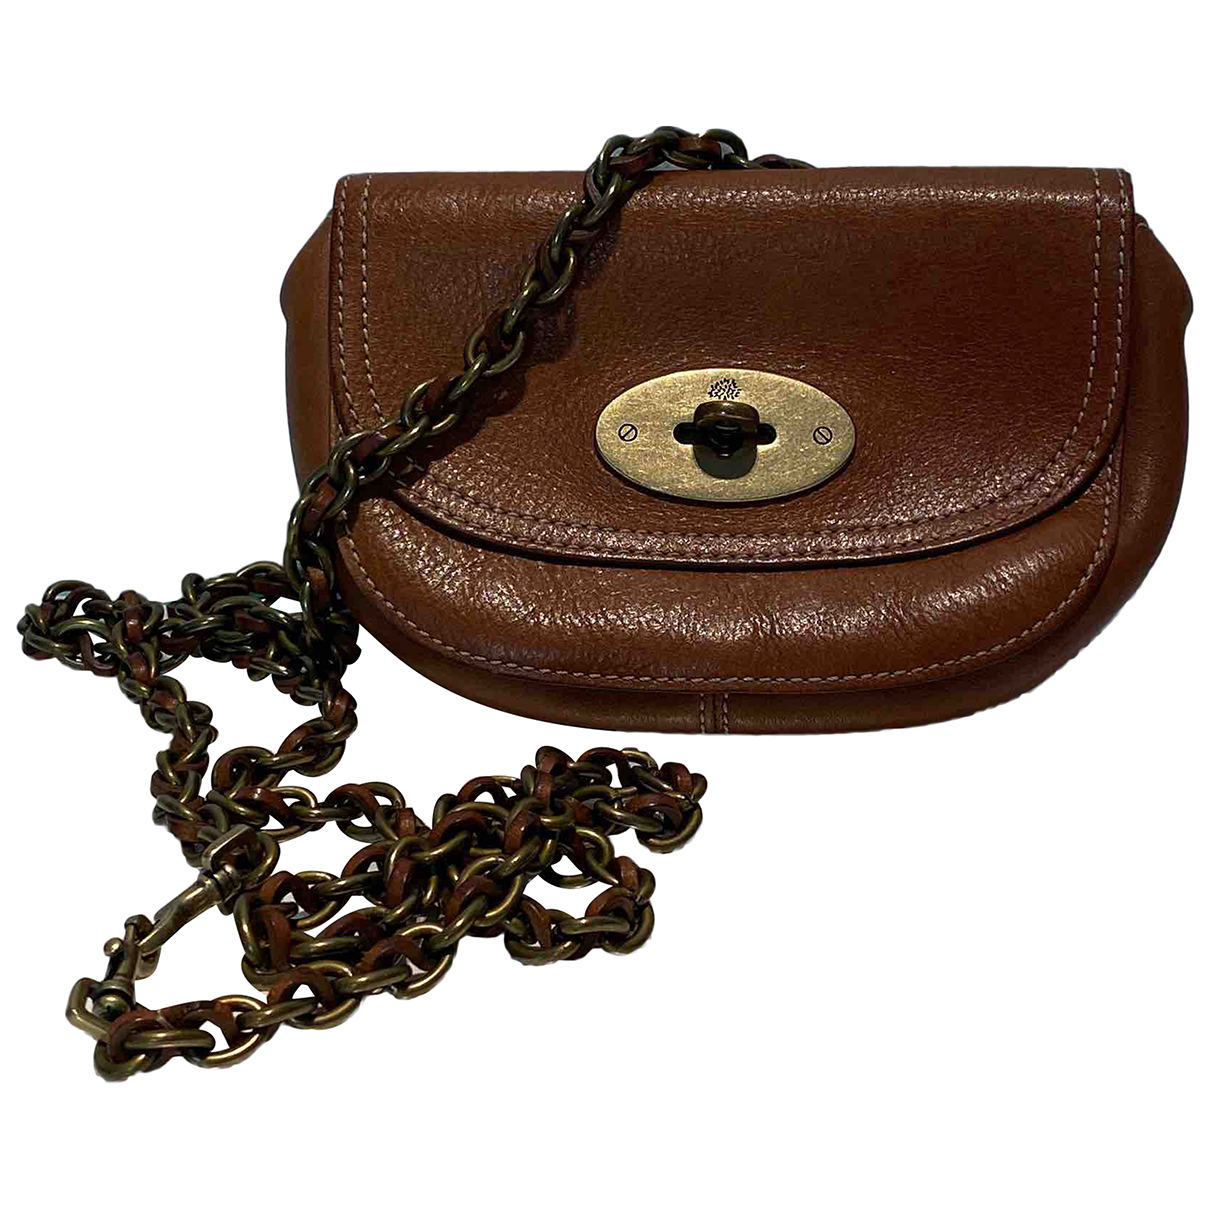 Mulberry Lily Brown Leather Clutch bag for Women N